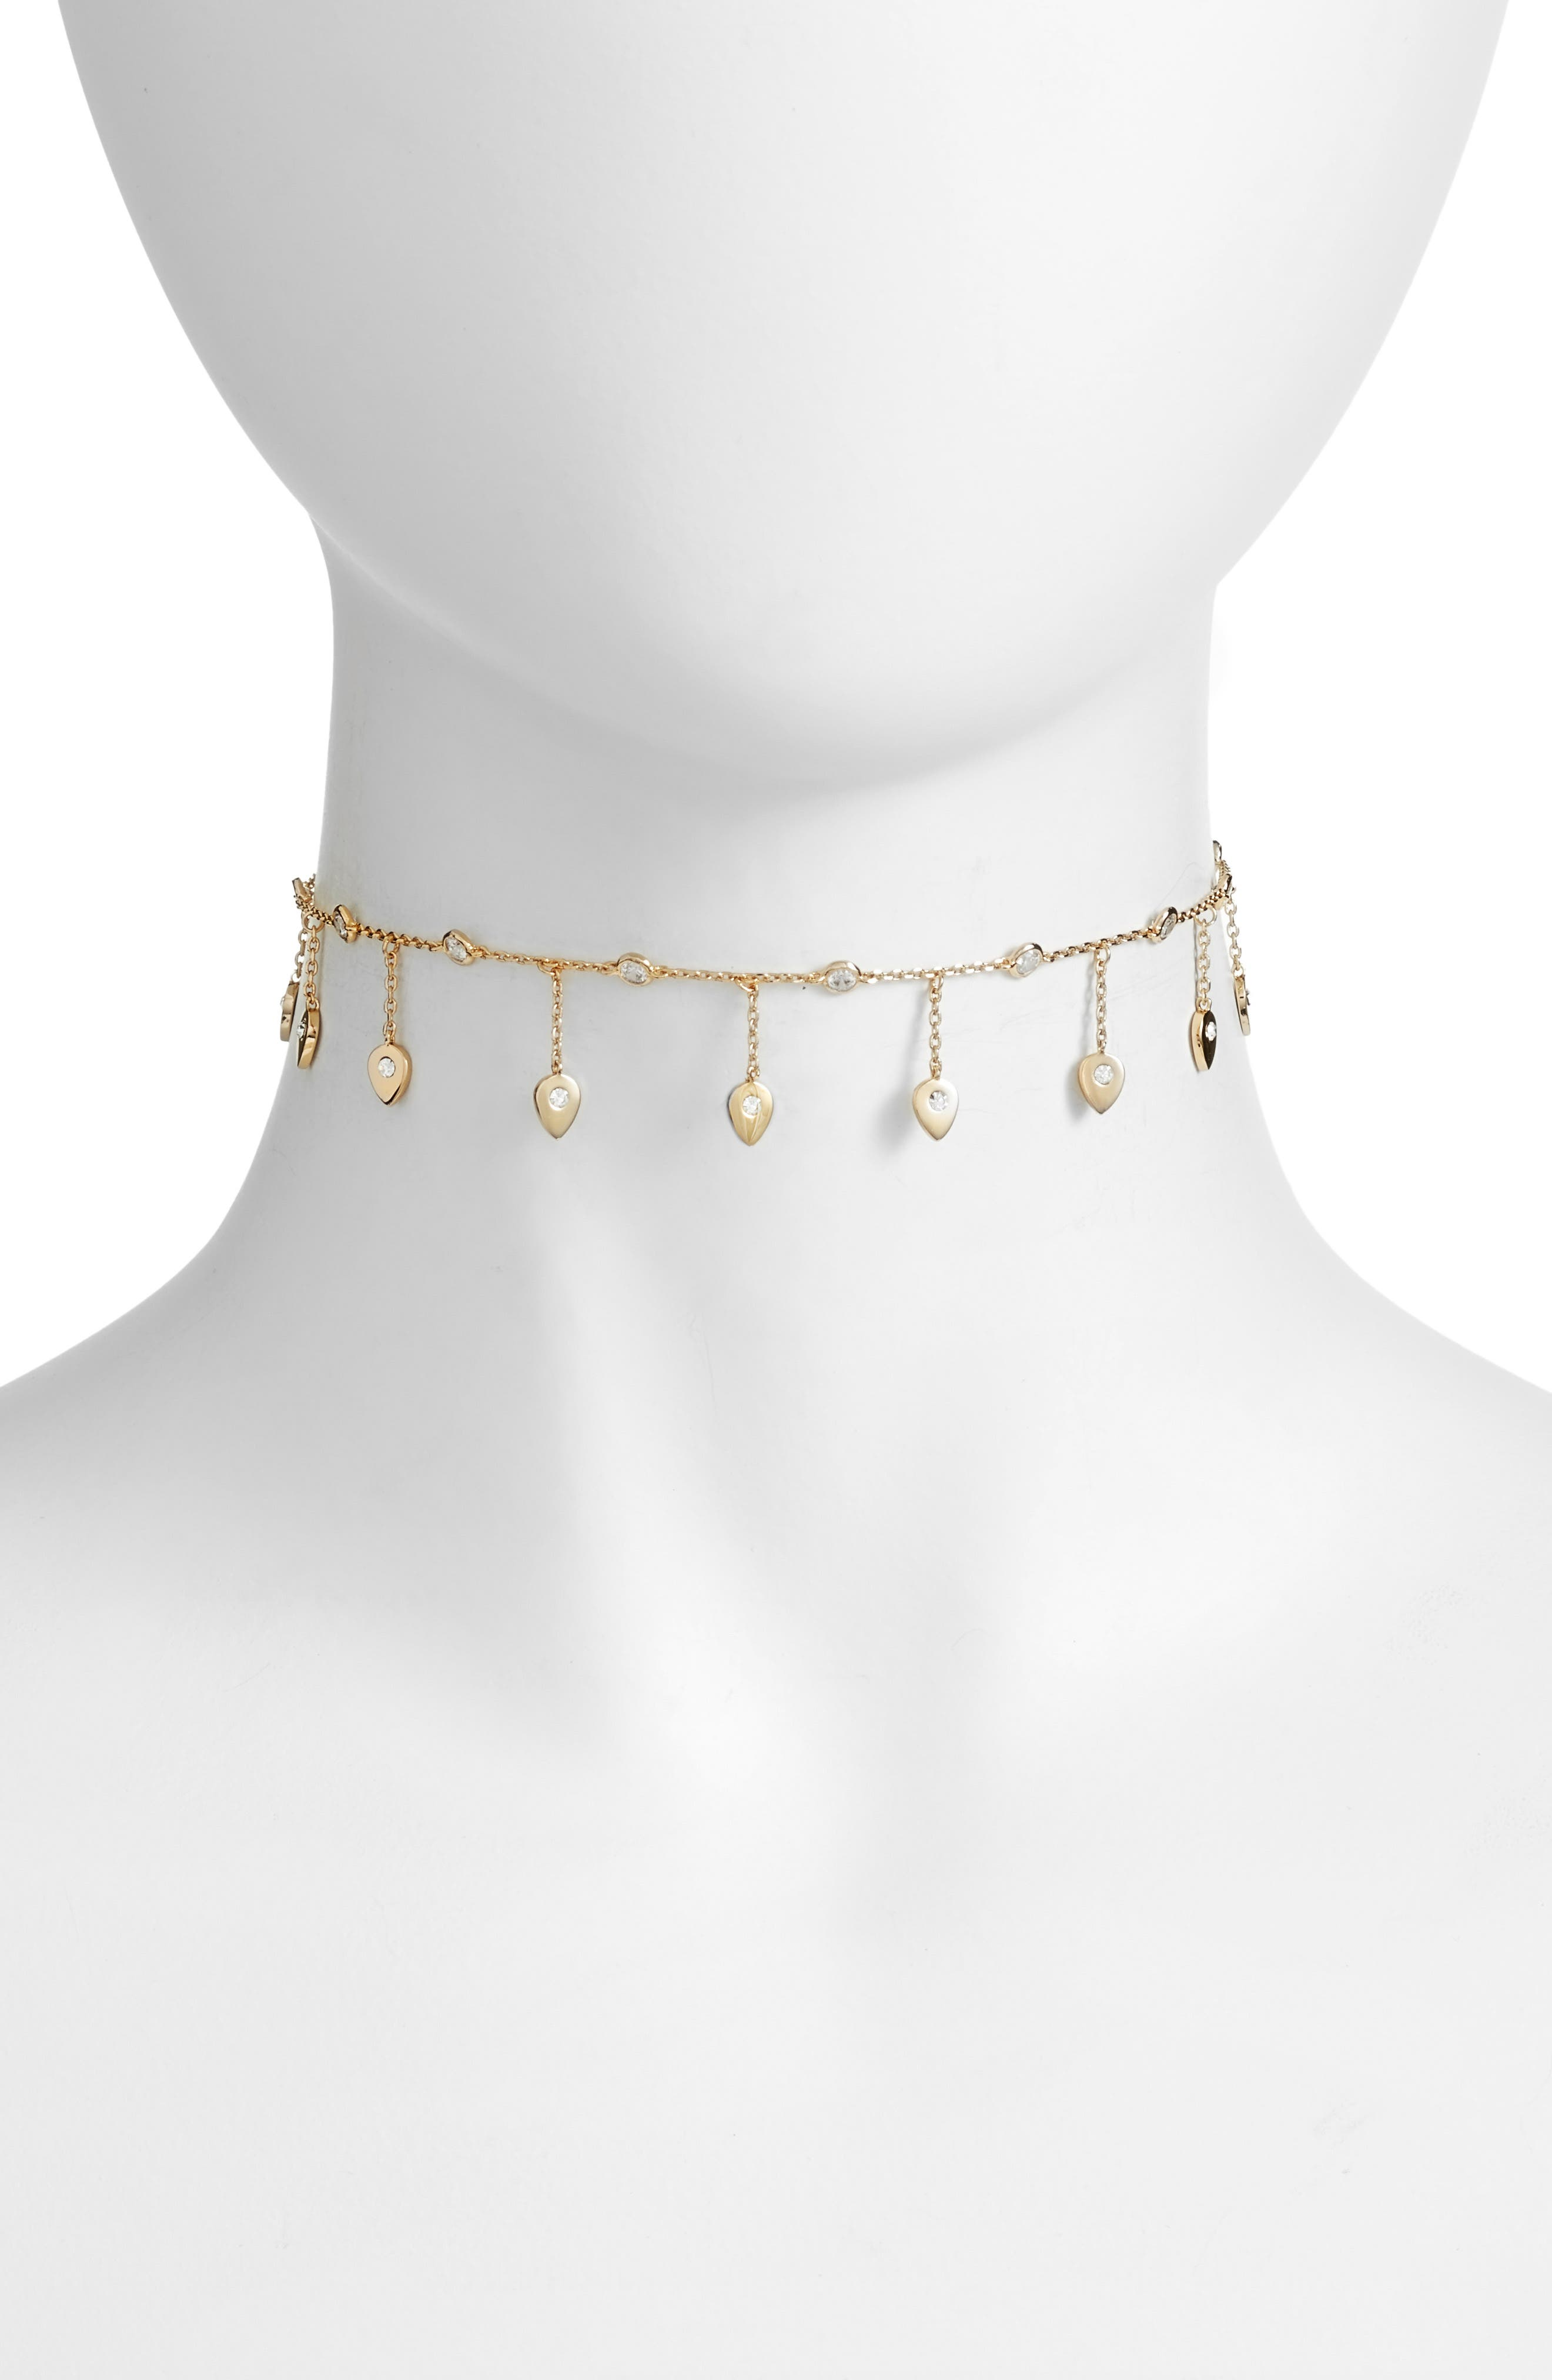 Jules Smith Rory Choker